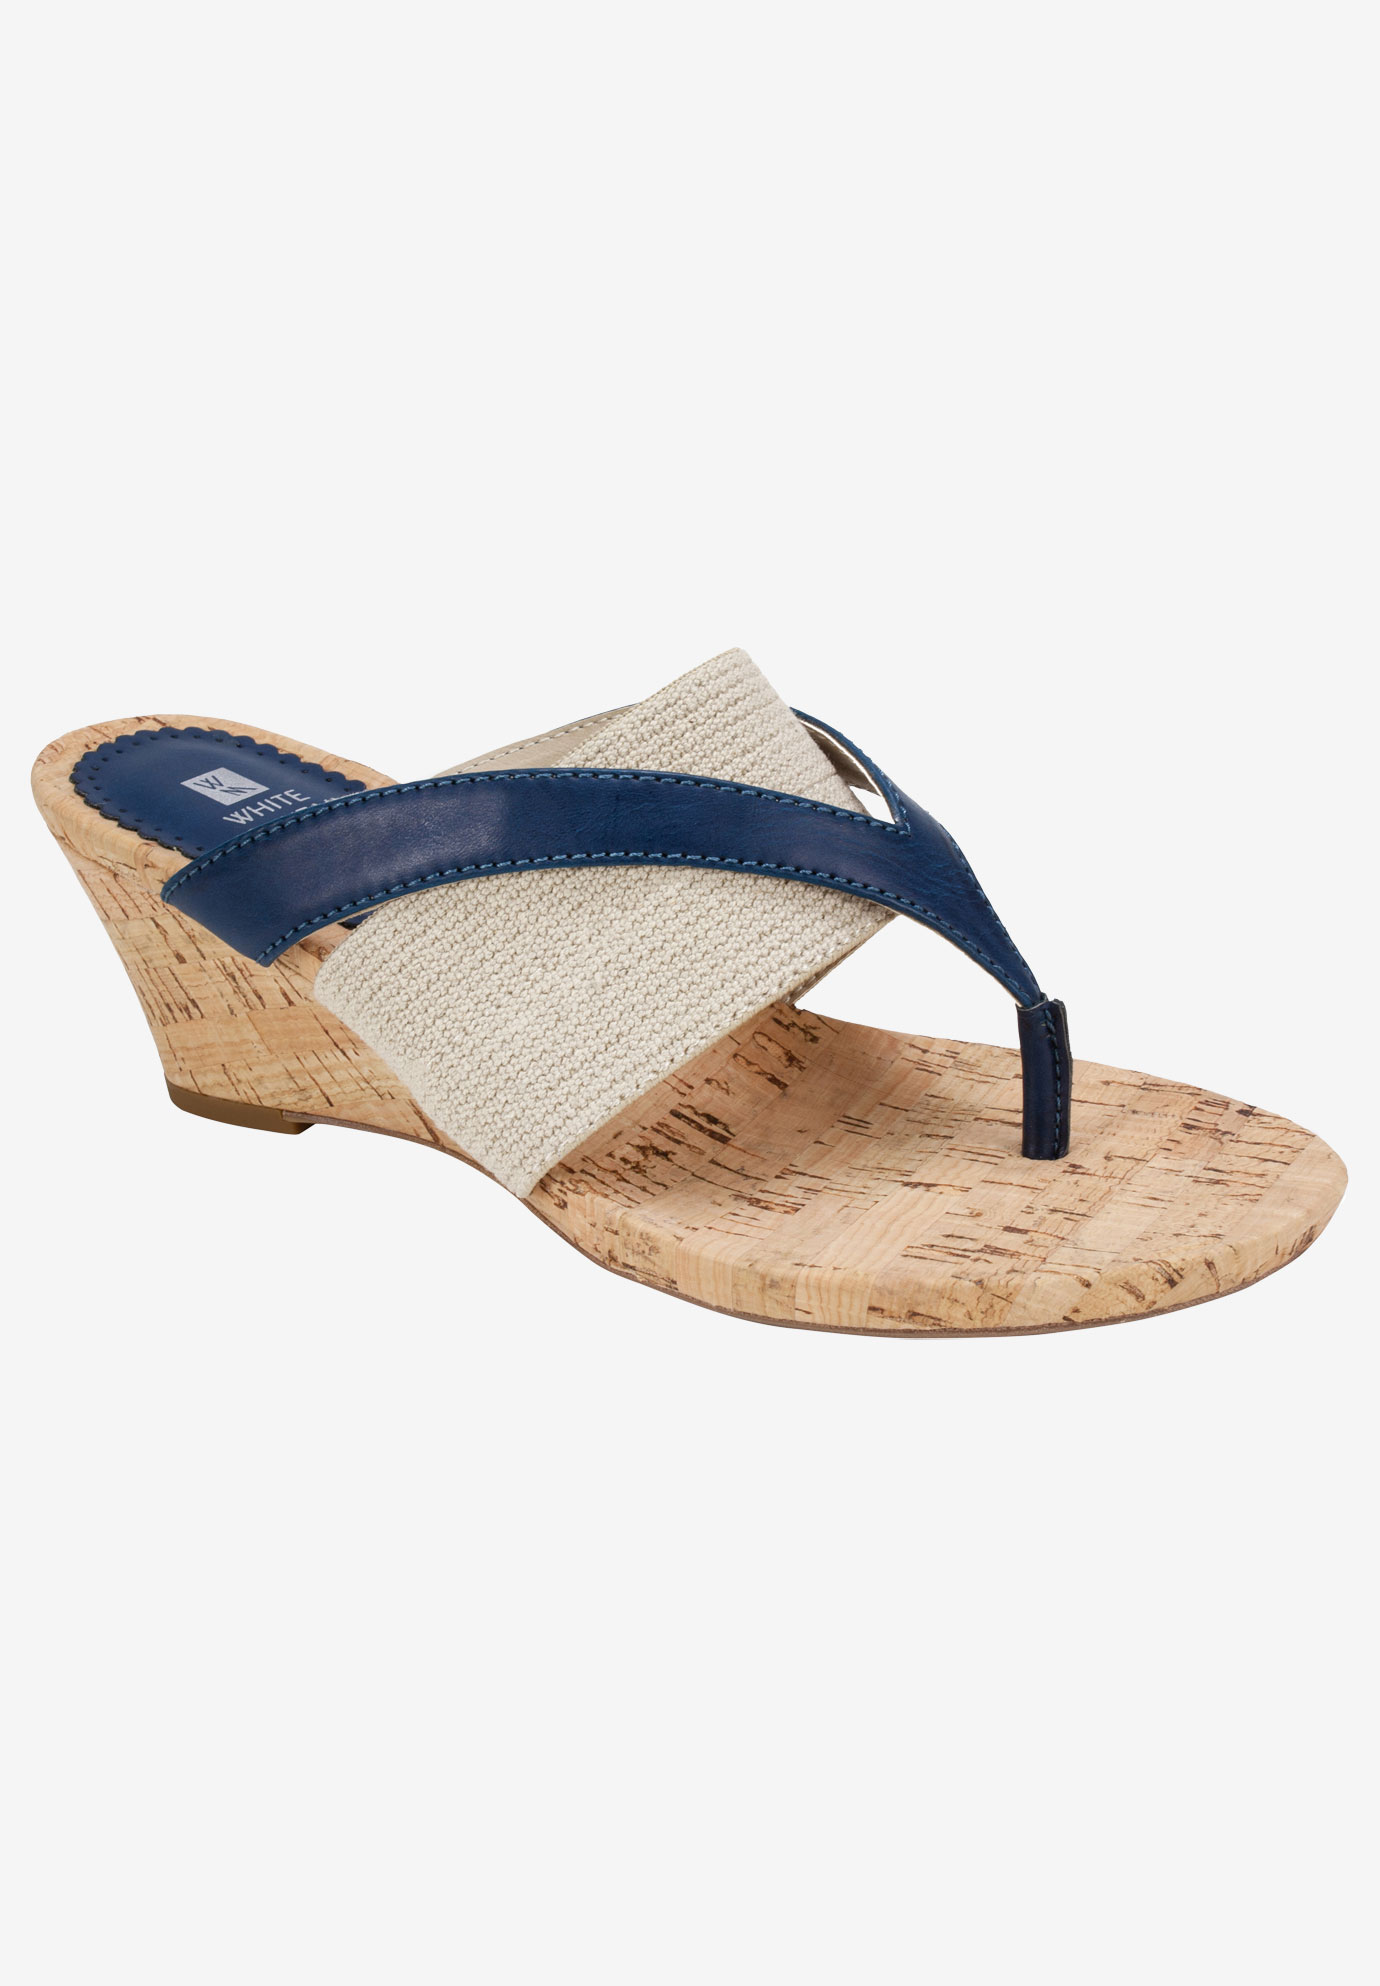 Alanna Sandal by White Mountain,